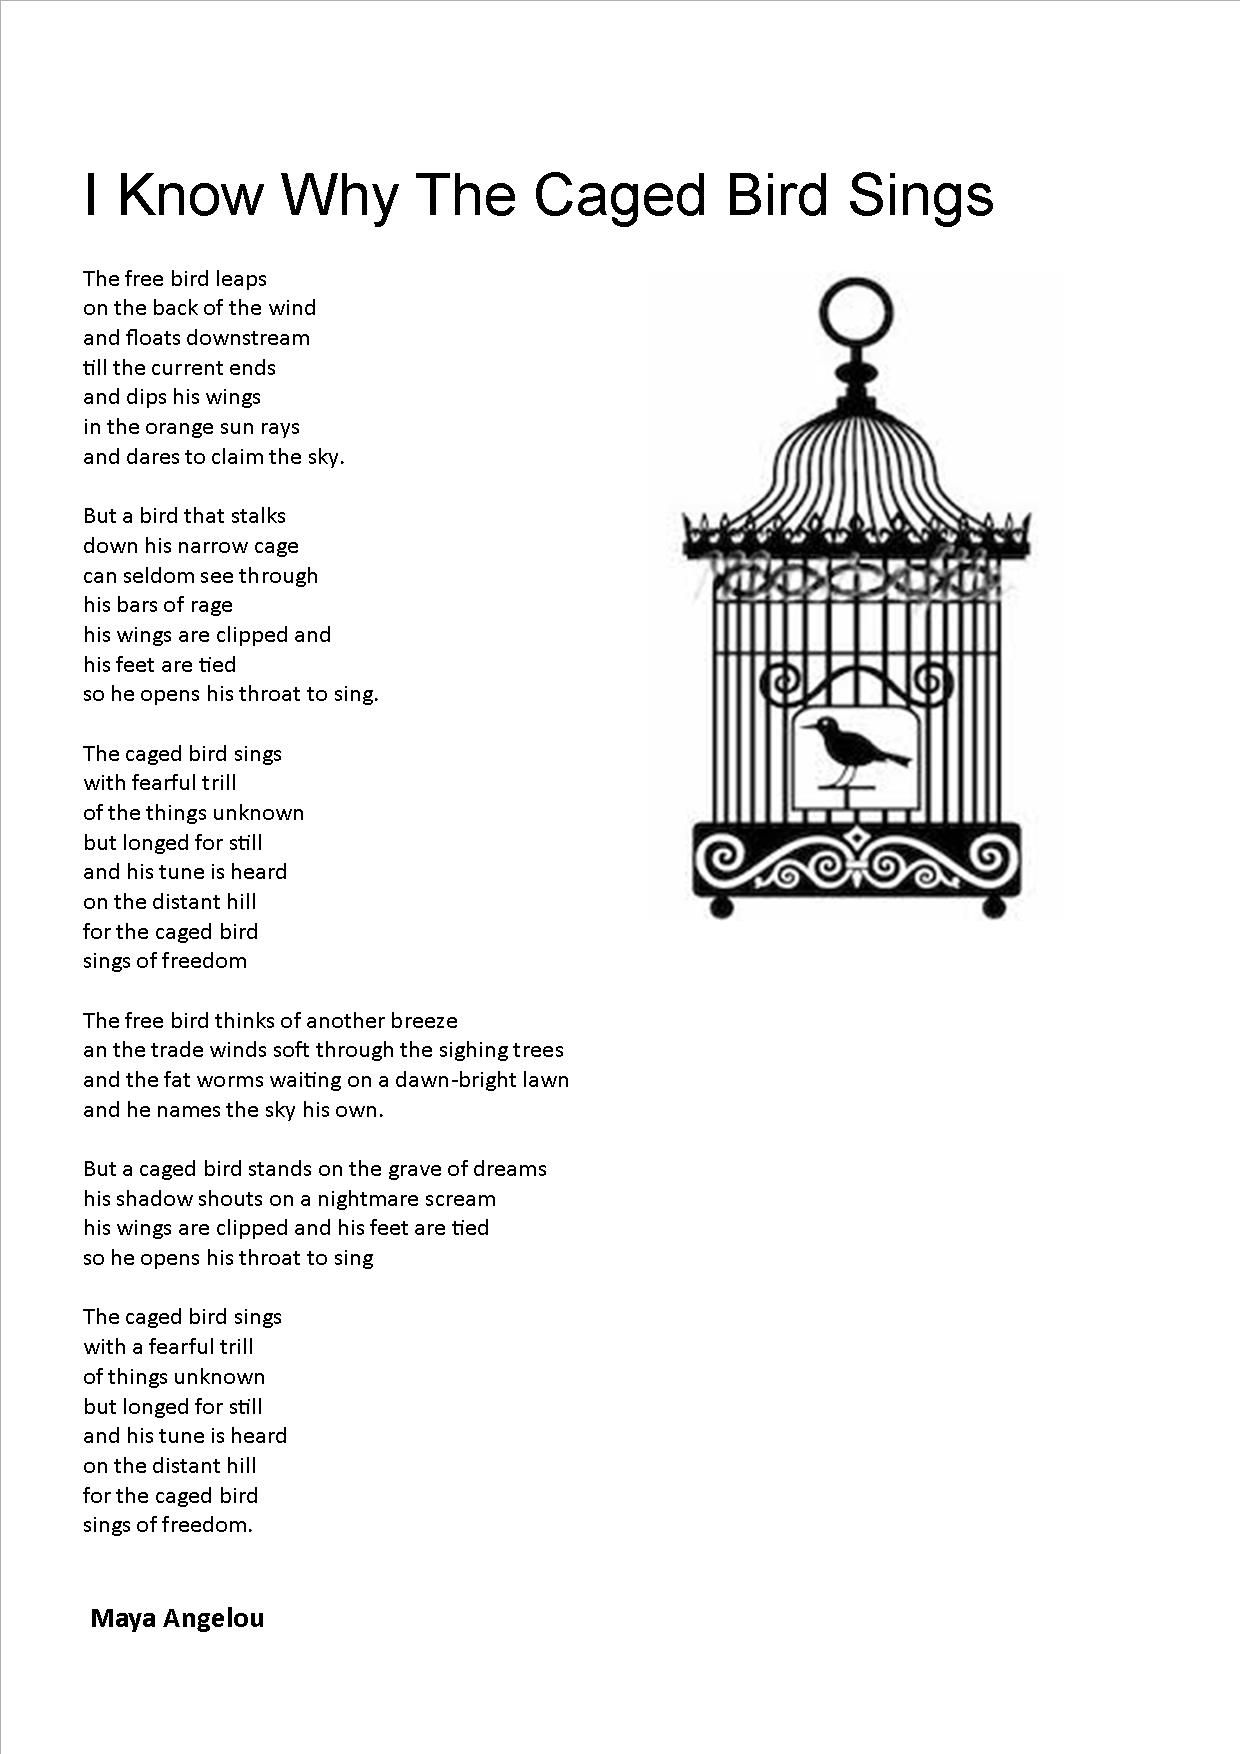 I Know Why The Cage Bird Sings Favorite Poem Tattoospiercings